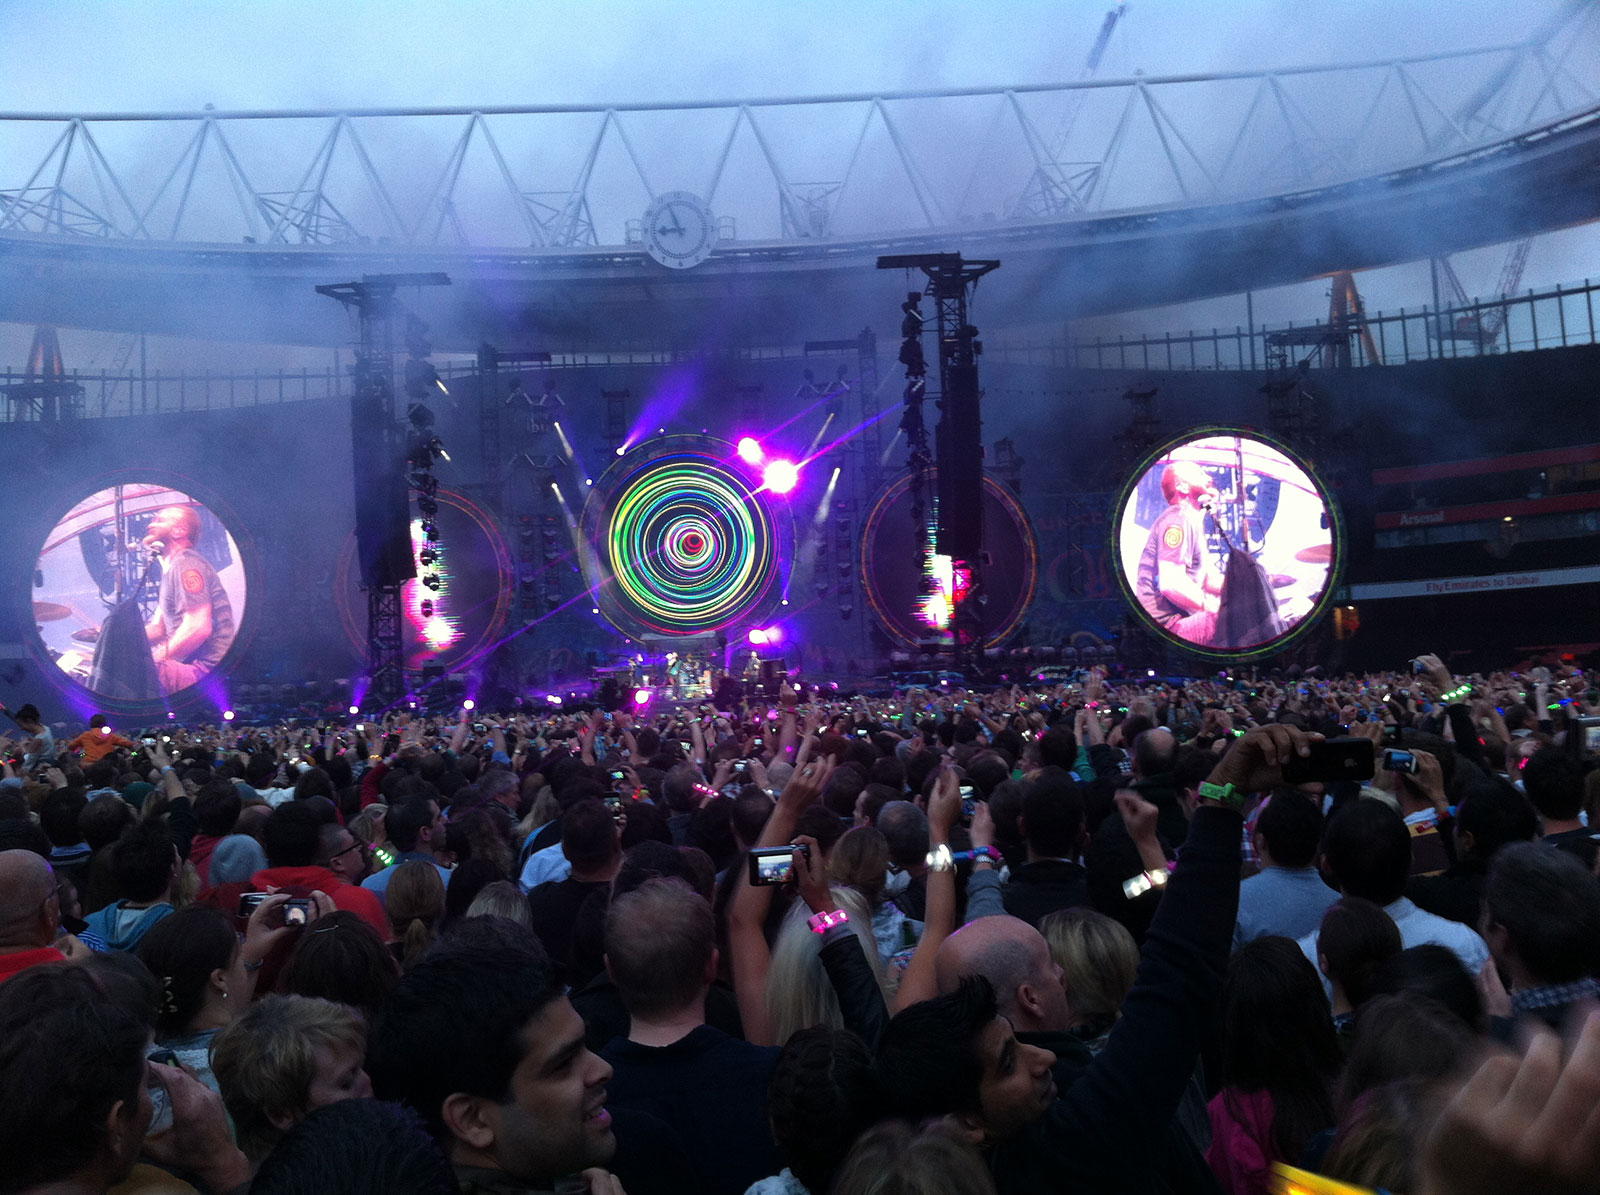 Coldplay's Mylo Xyloto stage